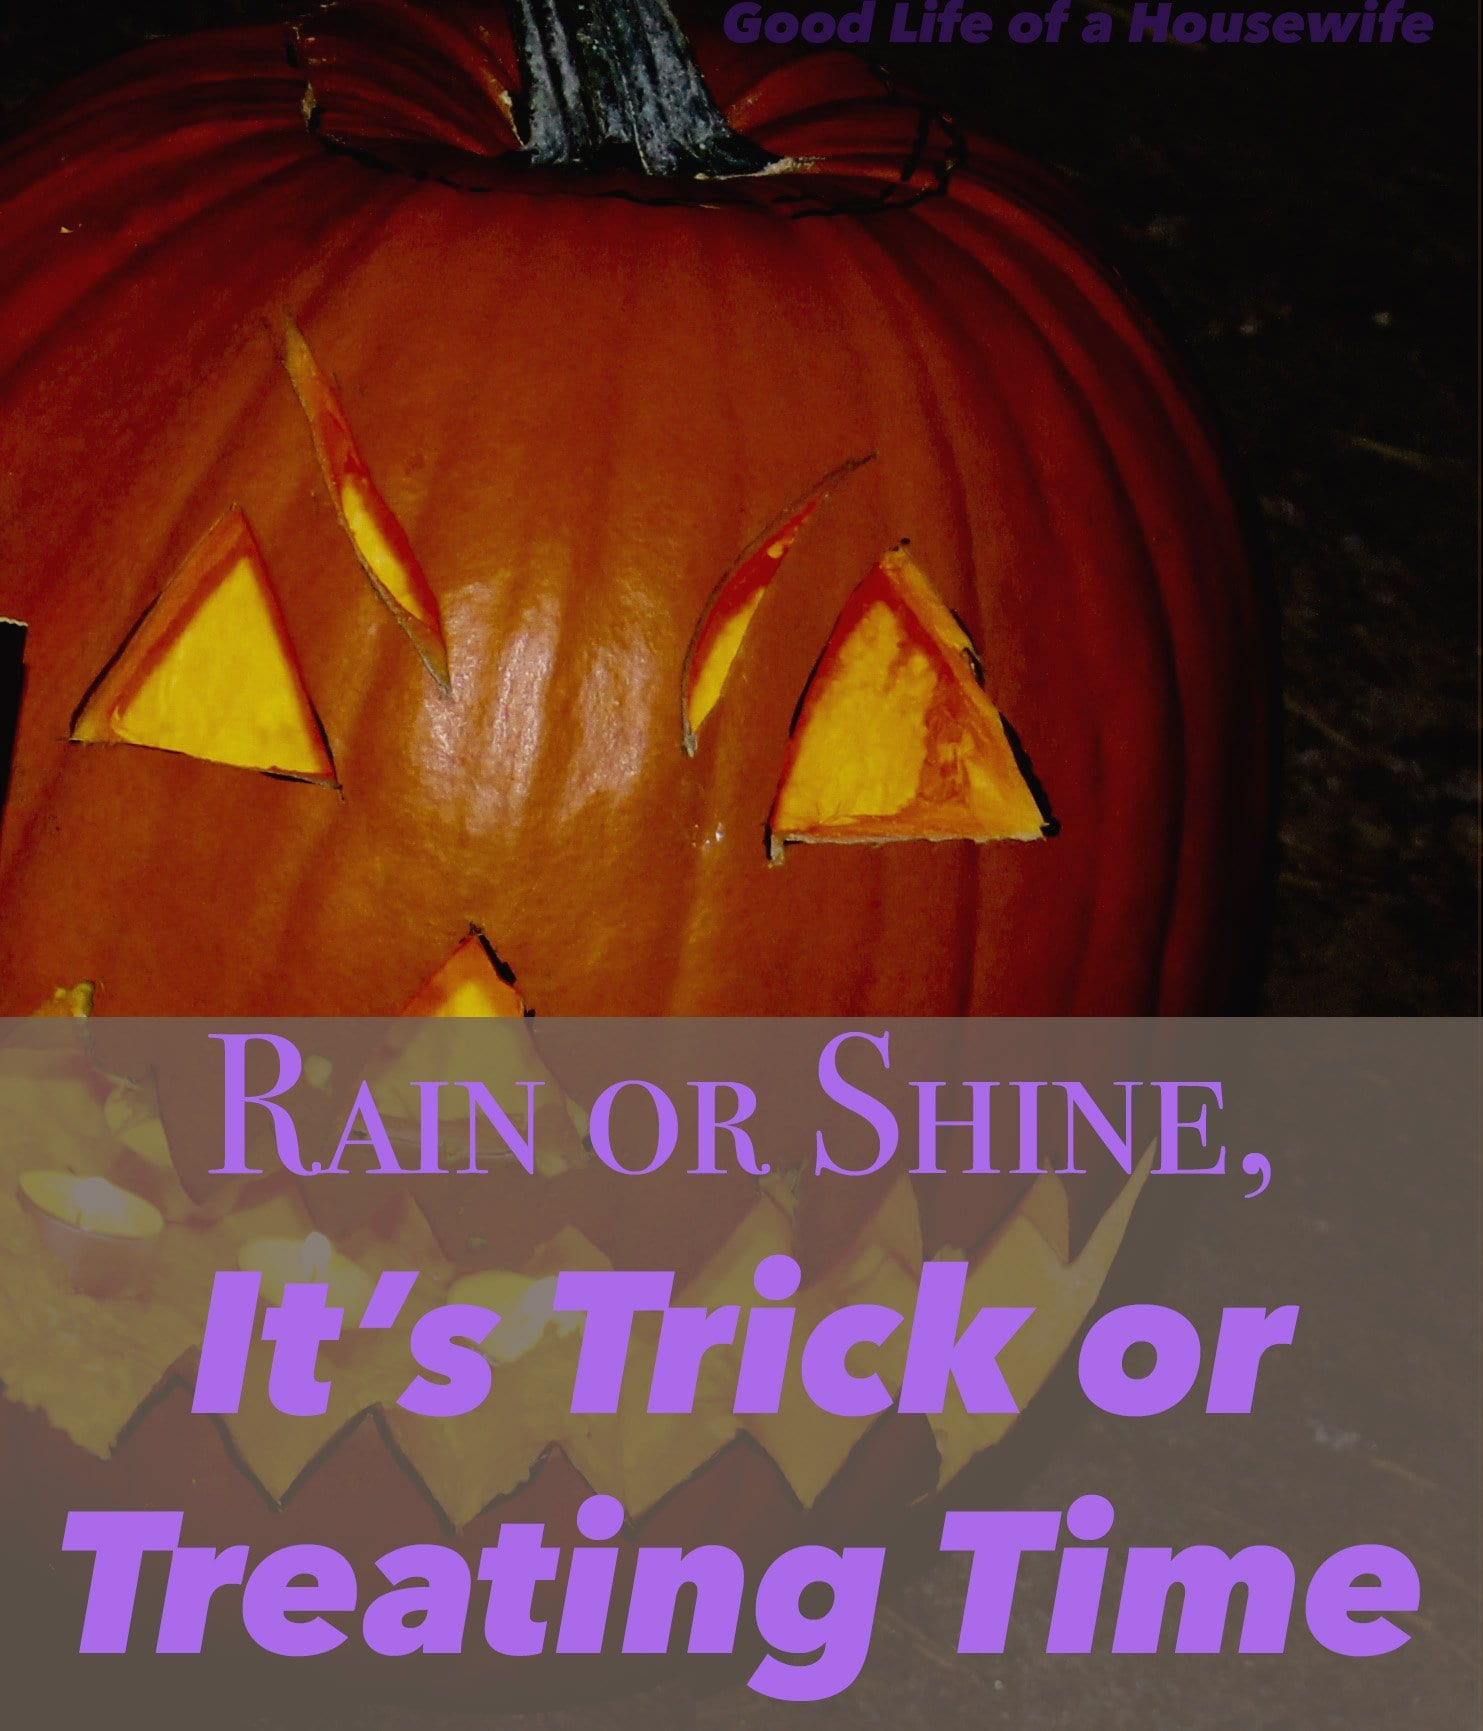 Rain or Shine, It's Trick or Treating Time www.goodlifeofahousewife.com